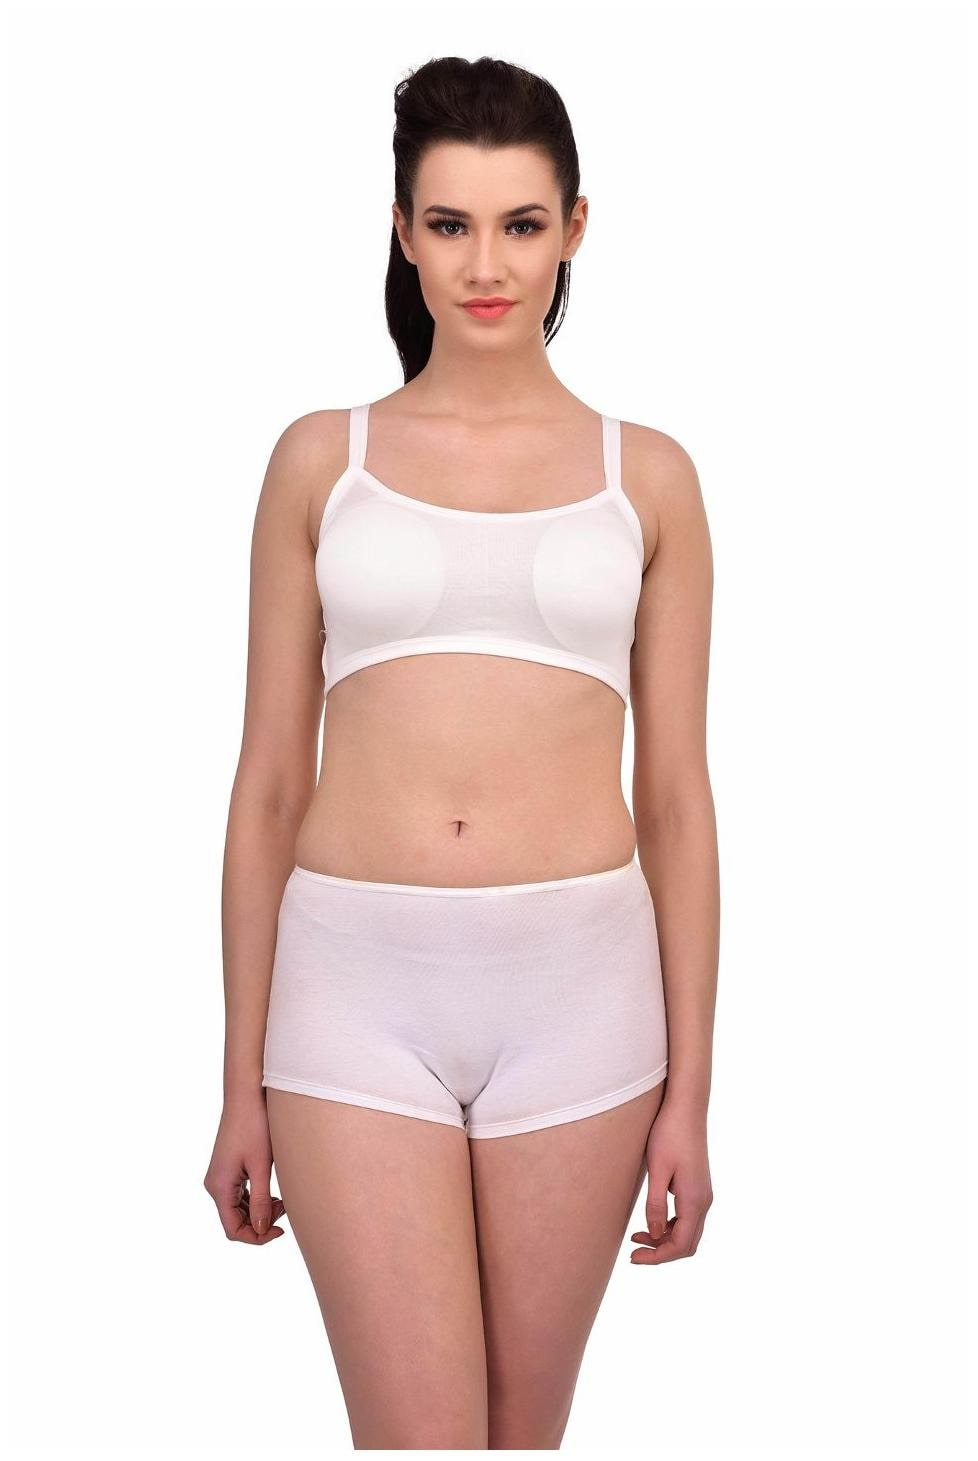 0e90962344188 Buy N-Gal Stylish 3 Straps Back Caged White Underwire Crop Top T-Shirt  Padded Bra Bralette Online at Low Prices in India - Paytmmall.com